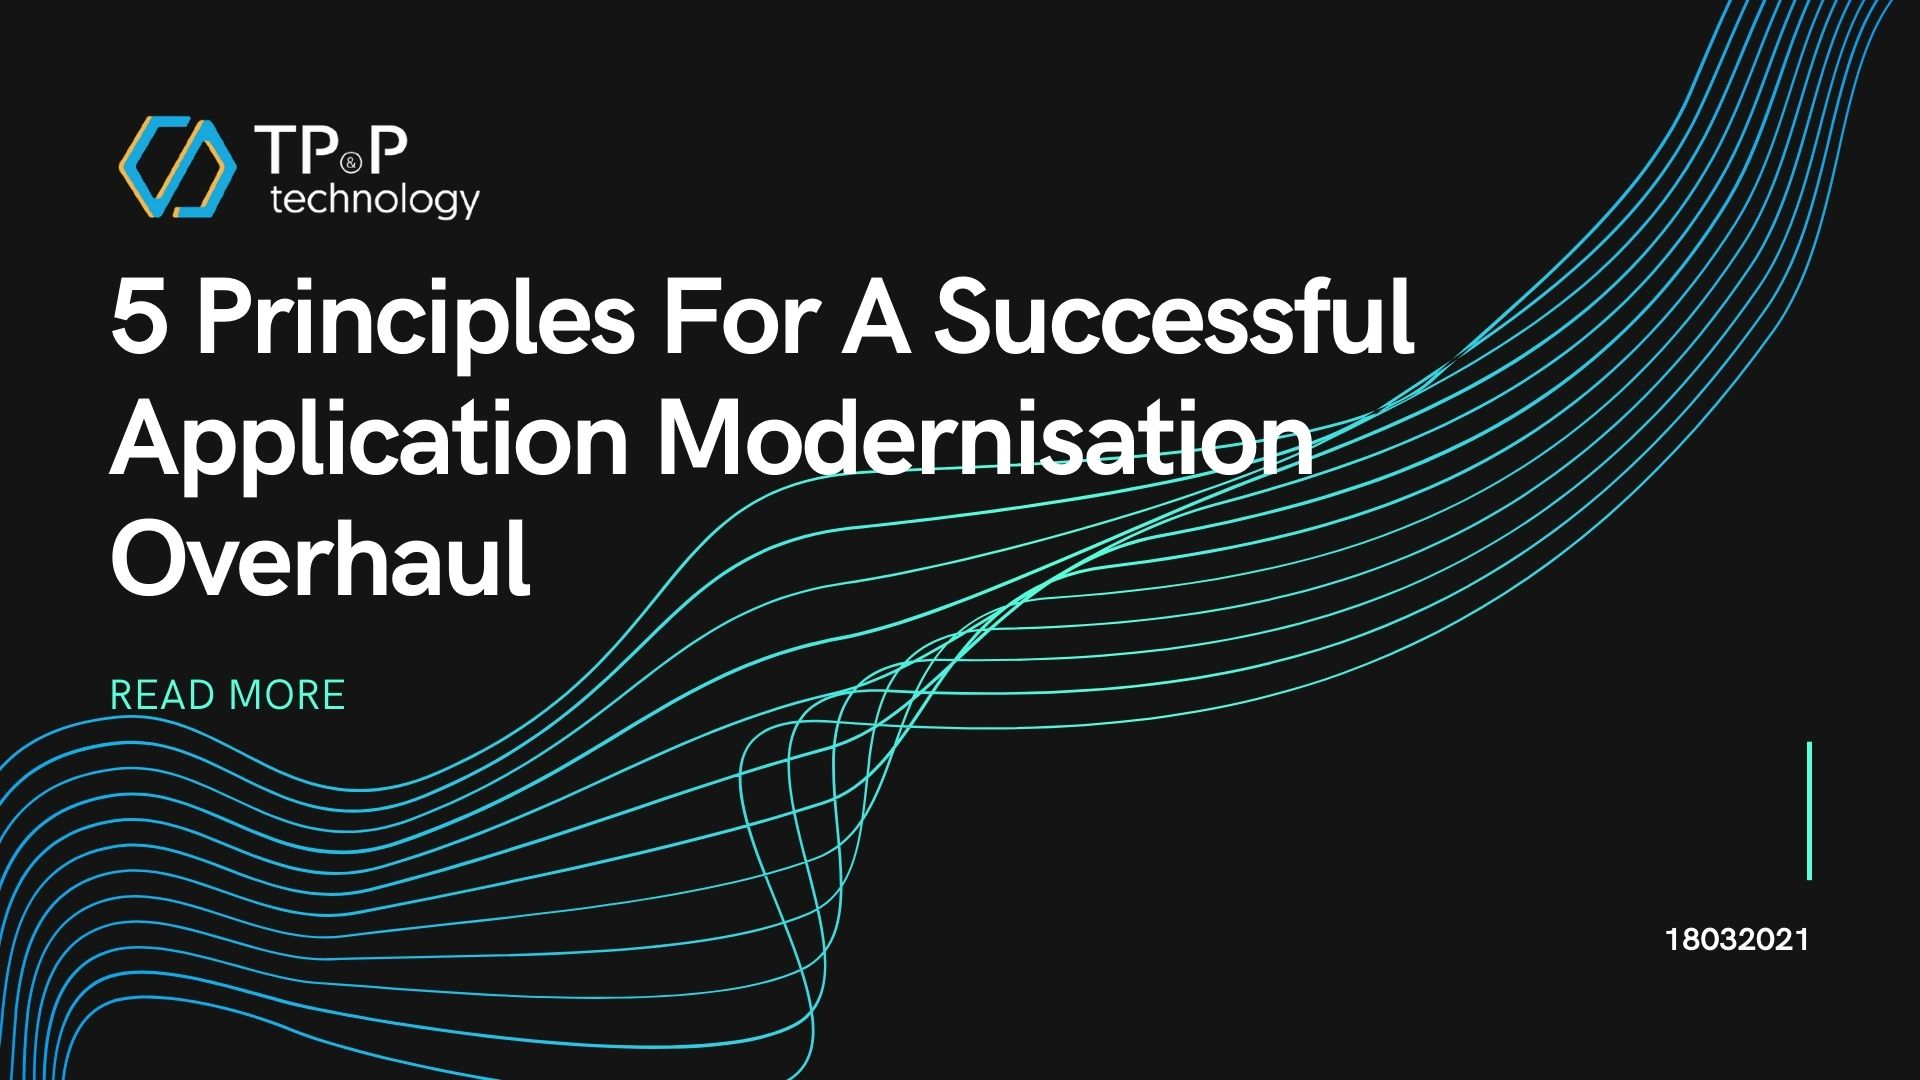 5 Principles For A Successful Application Modernisation Overhaul